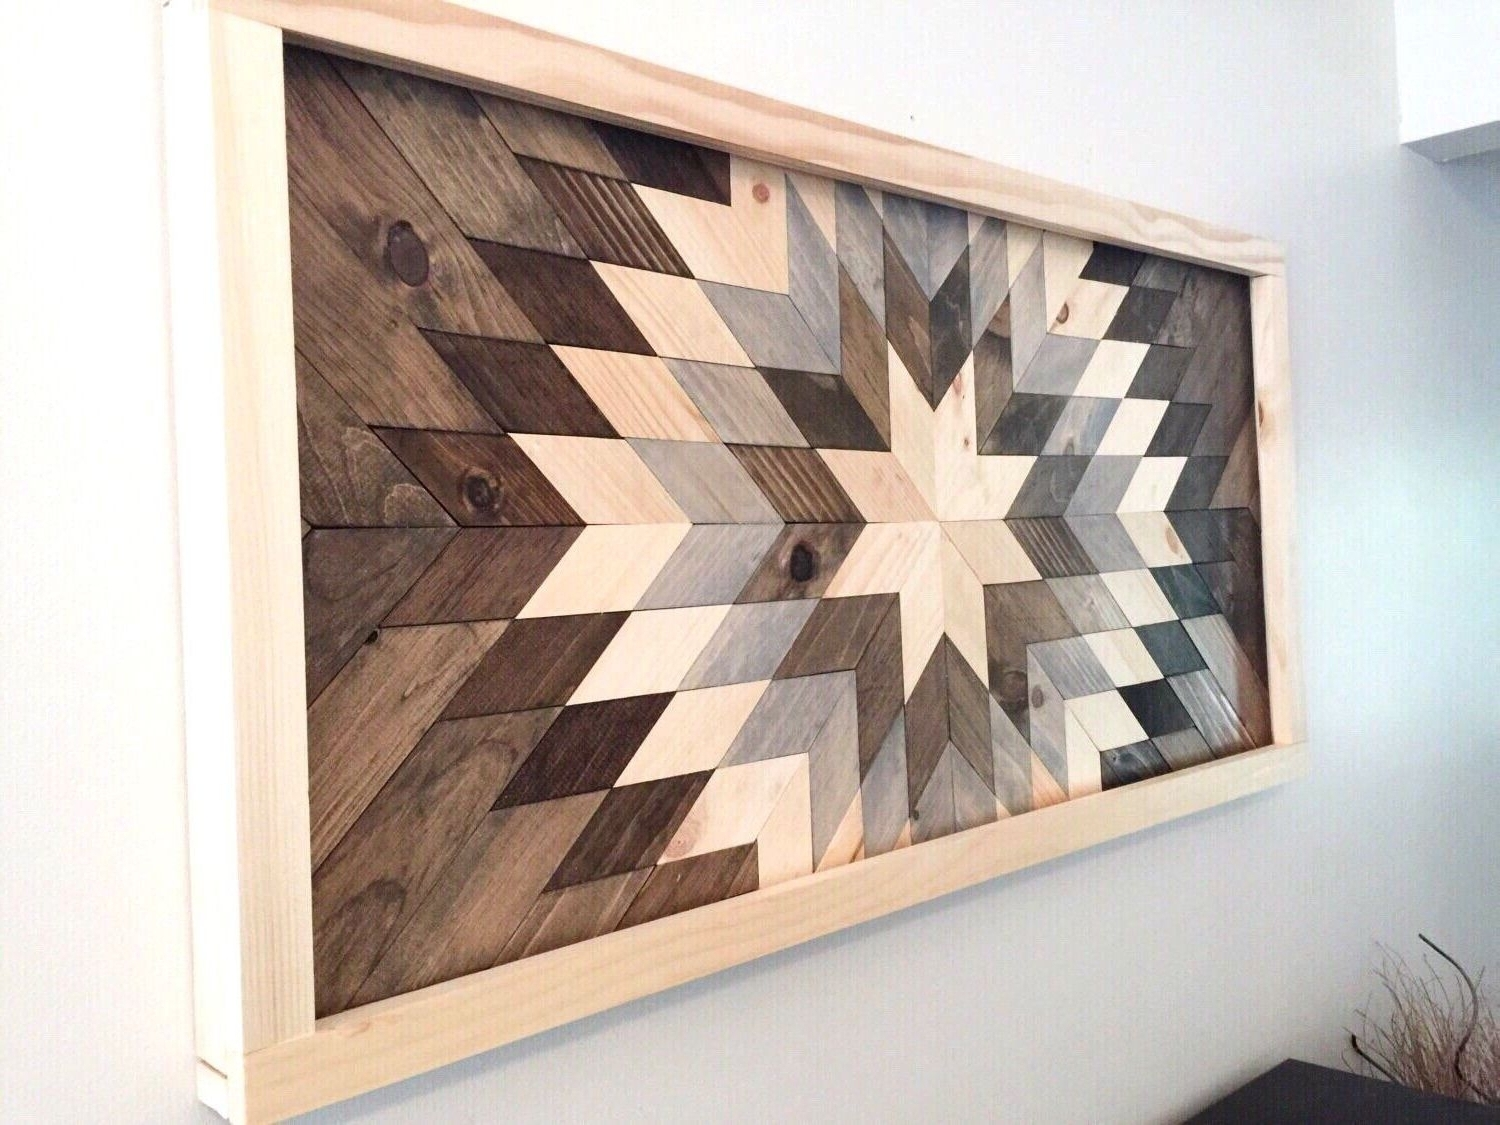 Wood Wall Art Diy In Well Liked Wood Decor Wall Art Wood Wall Art Diy Excellent Wooden Decor Ideas (View 13 of 15)